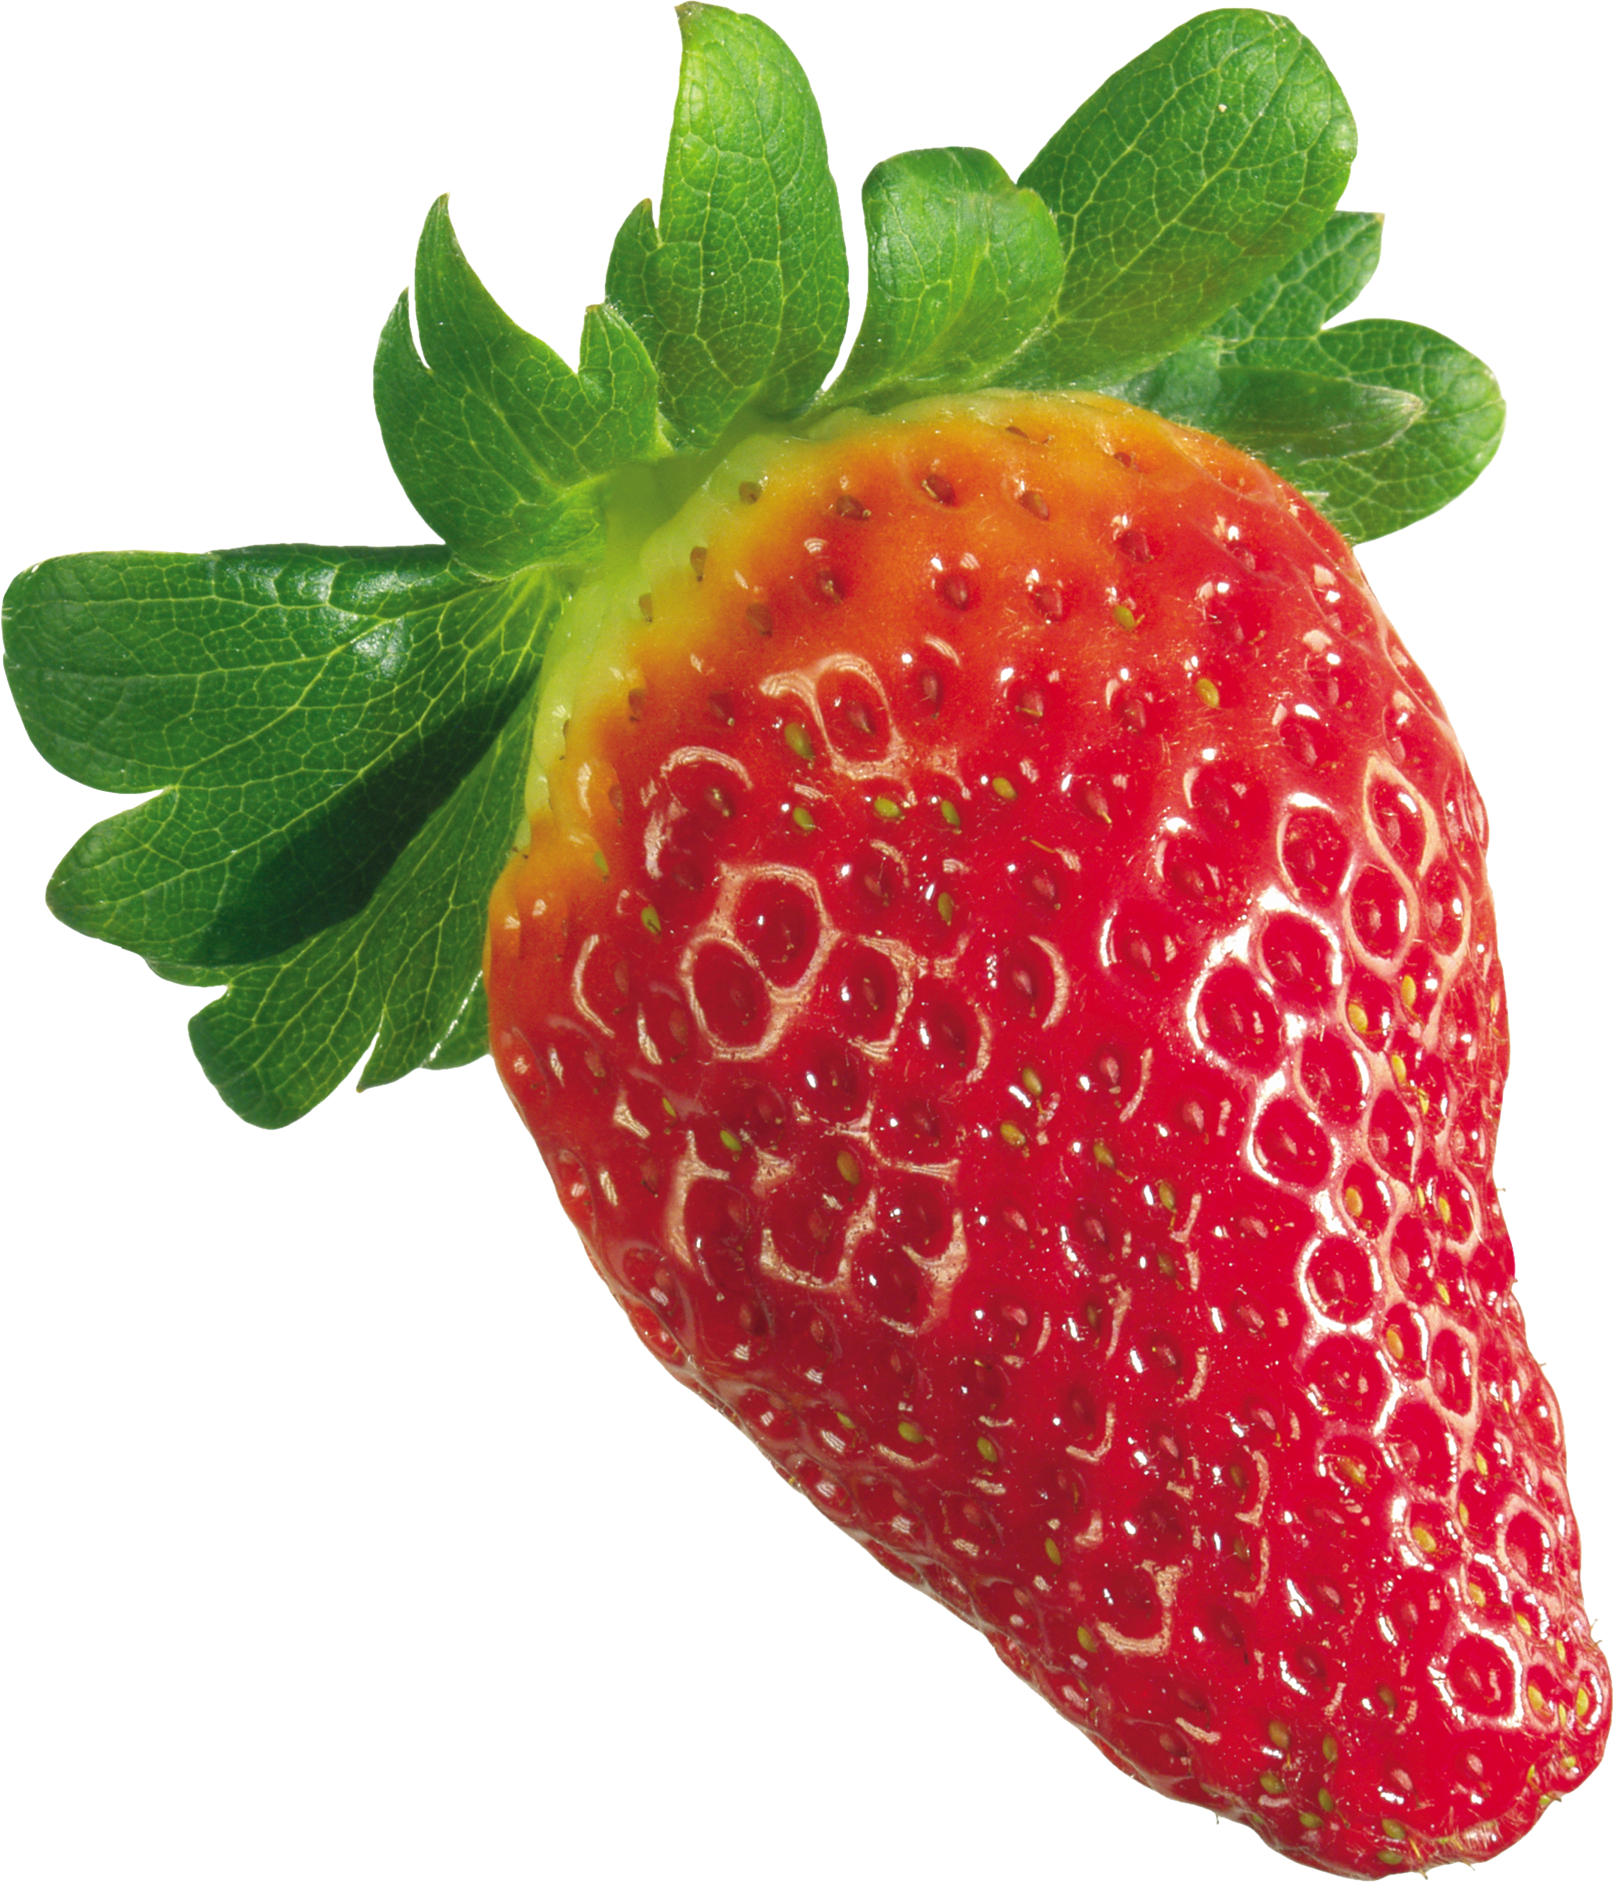 Best Free Strawberry Png Image Without Background - Strawberries Fraise Without Background (1614x1882), Png Download